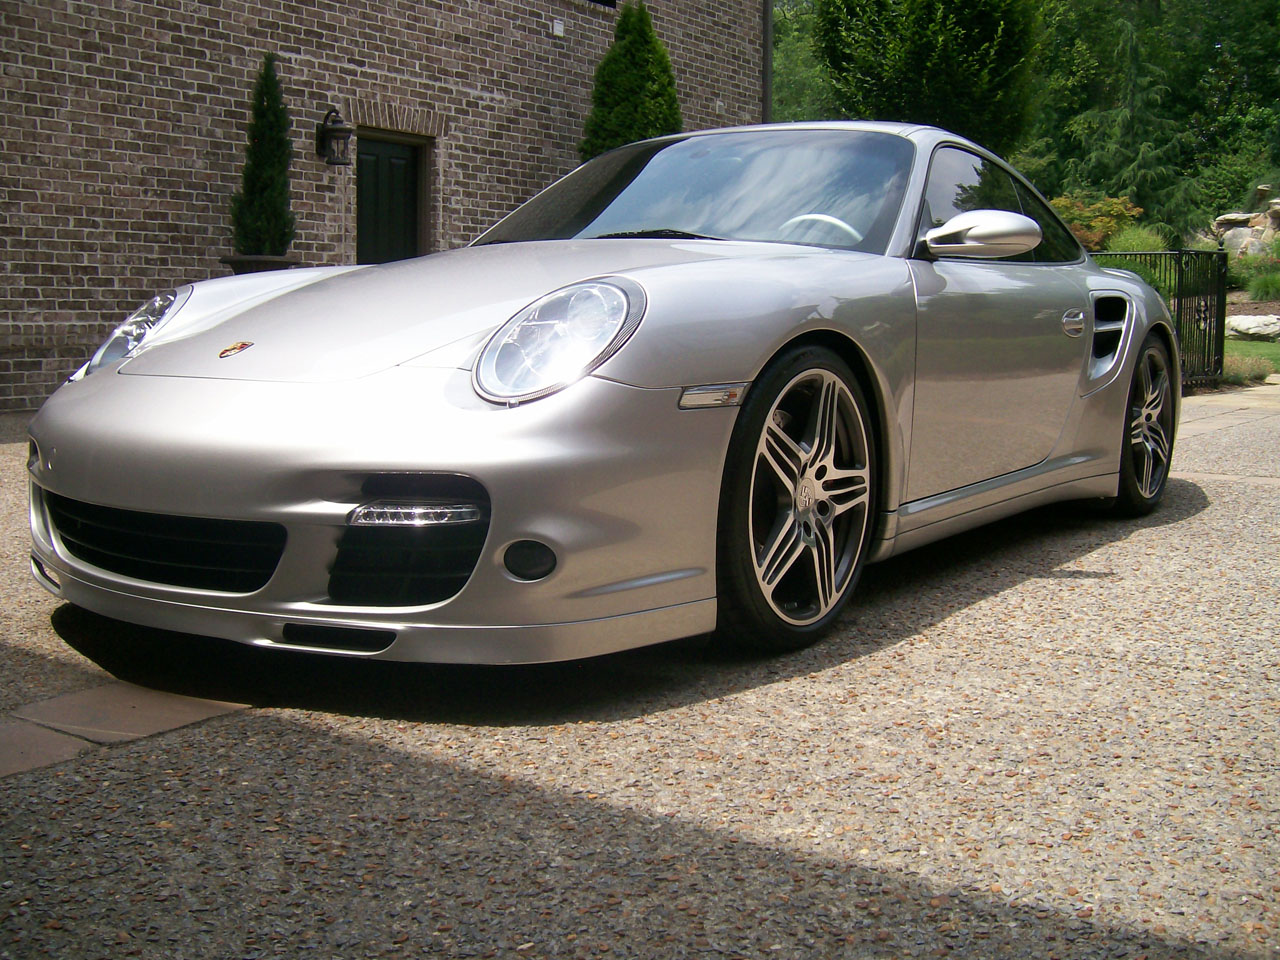 2007 porsche 911 turbo spi 750 1 4 mile trap speeds 0 60. Black Bedroom Furniture Sets. Home Design Ideas